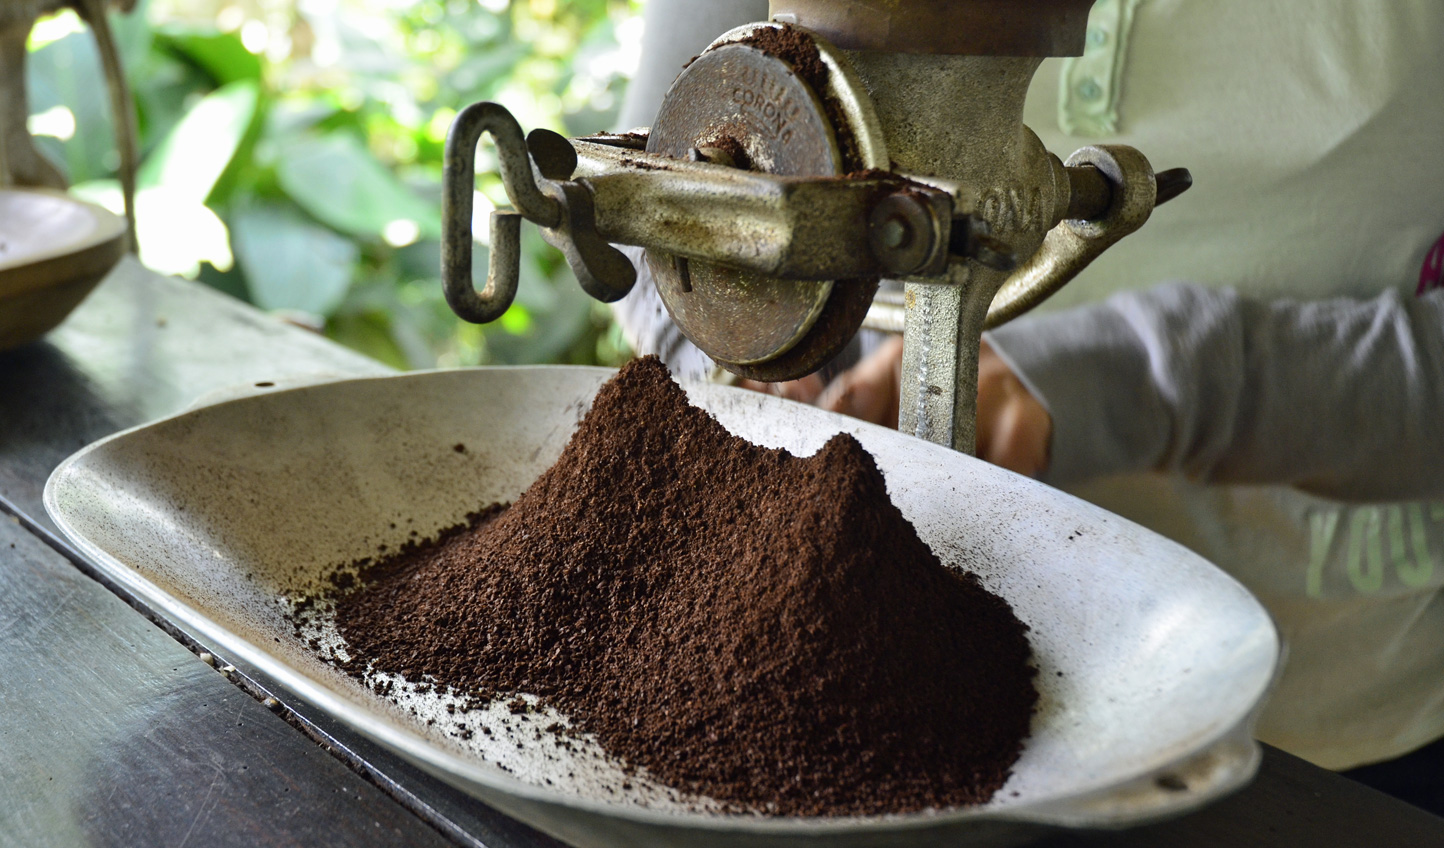 Taste the freshest coffee while visiting Colombia's coffee region